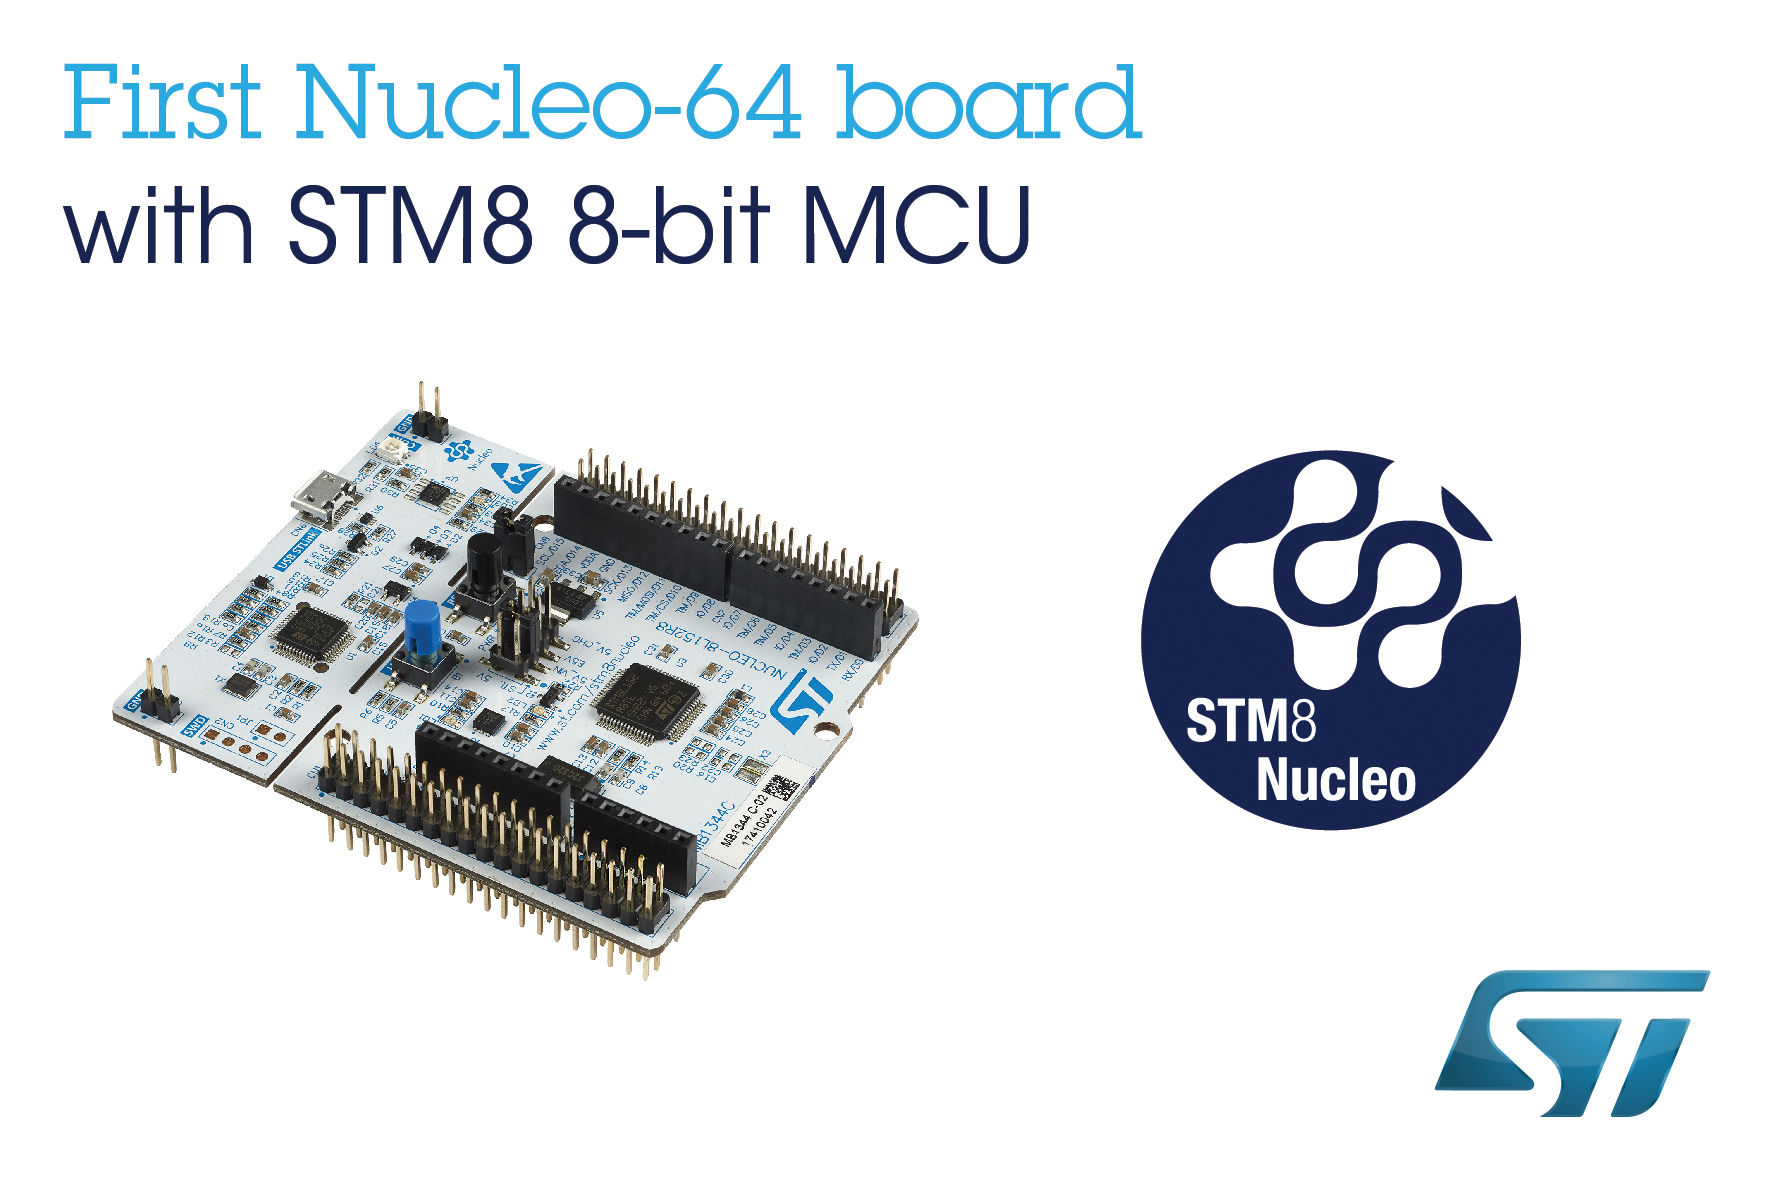 Stm8 Nucleo Boards From Stmicroelectronics Connect 8 Bit Projects To Digital Power Control 32 Mcu Open Source Hardware Resources